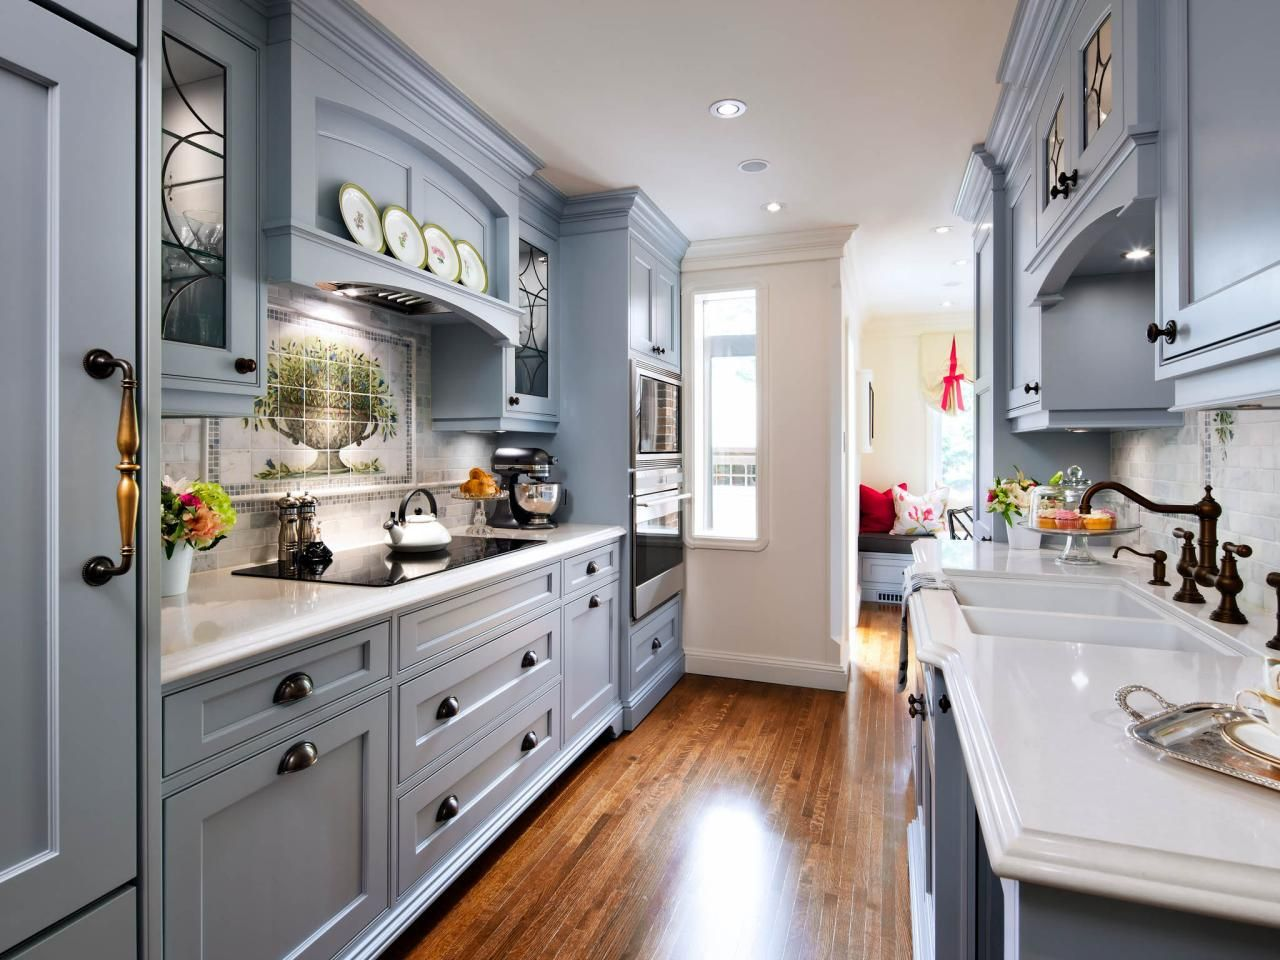 Blue traditional kitchen pictures english cottage charm for Cottage kitchen island ideas